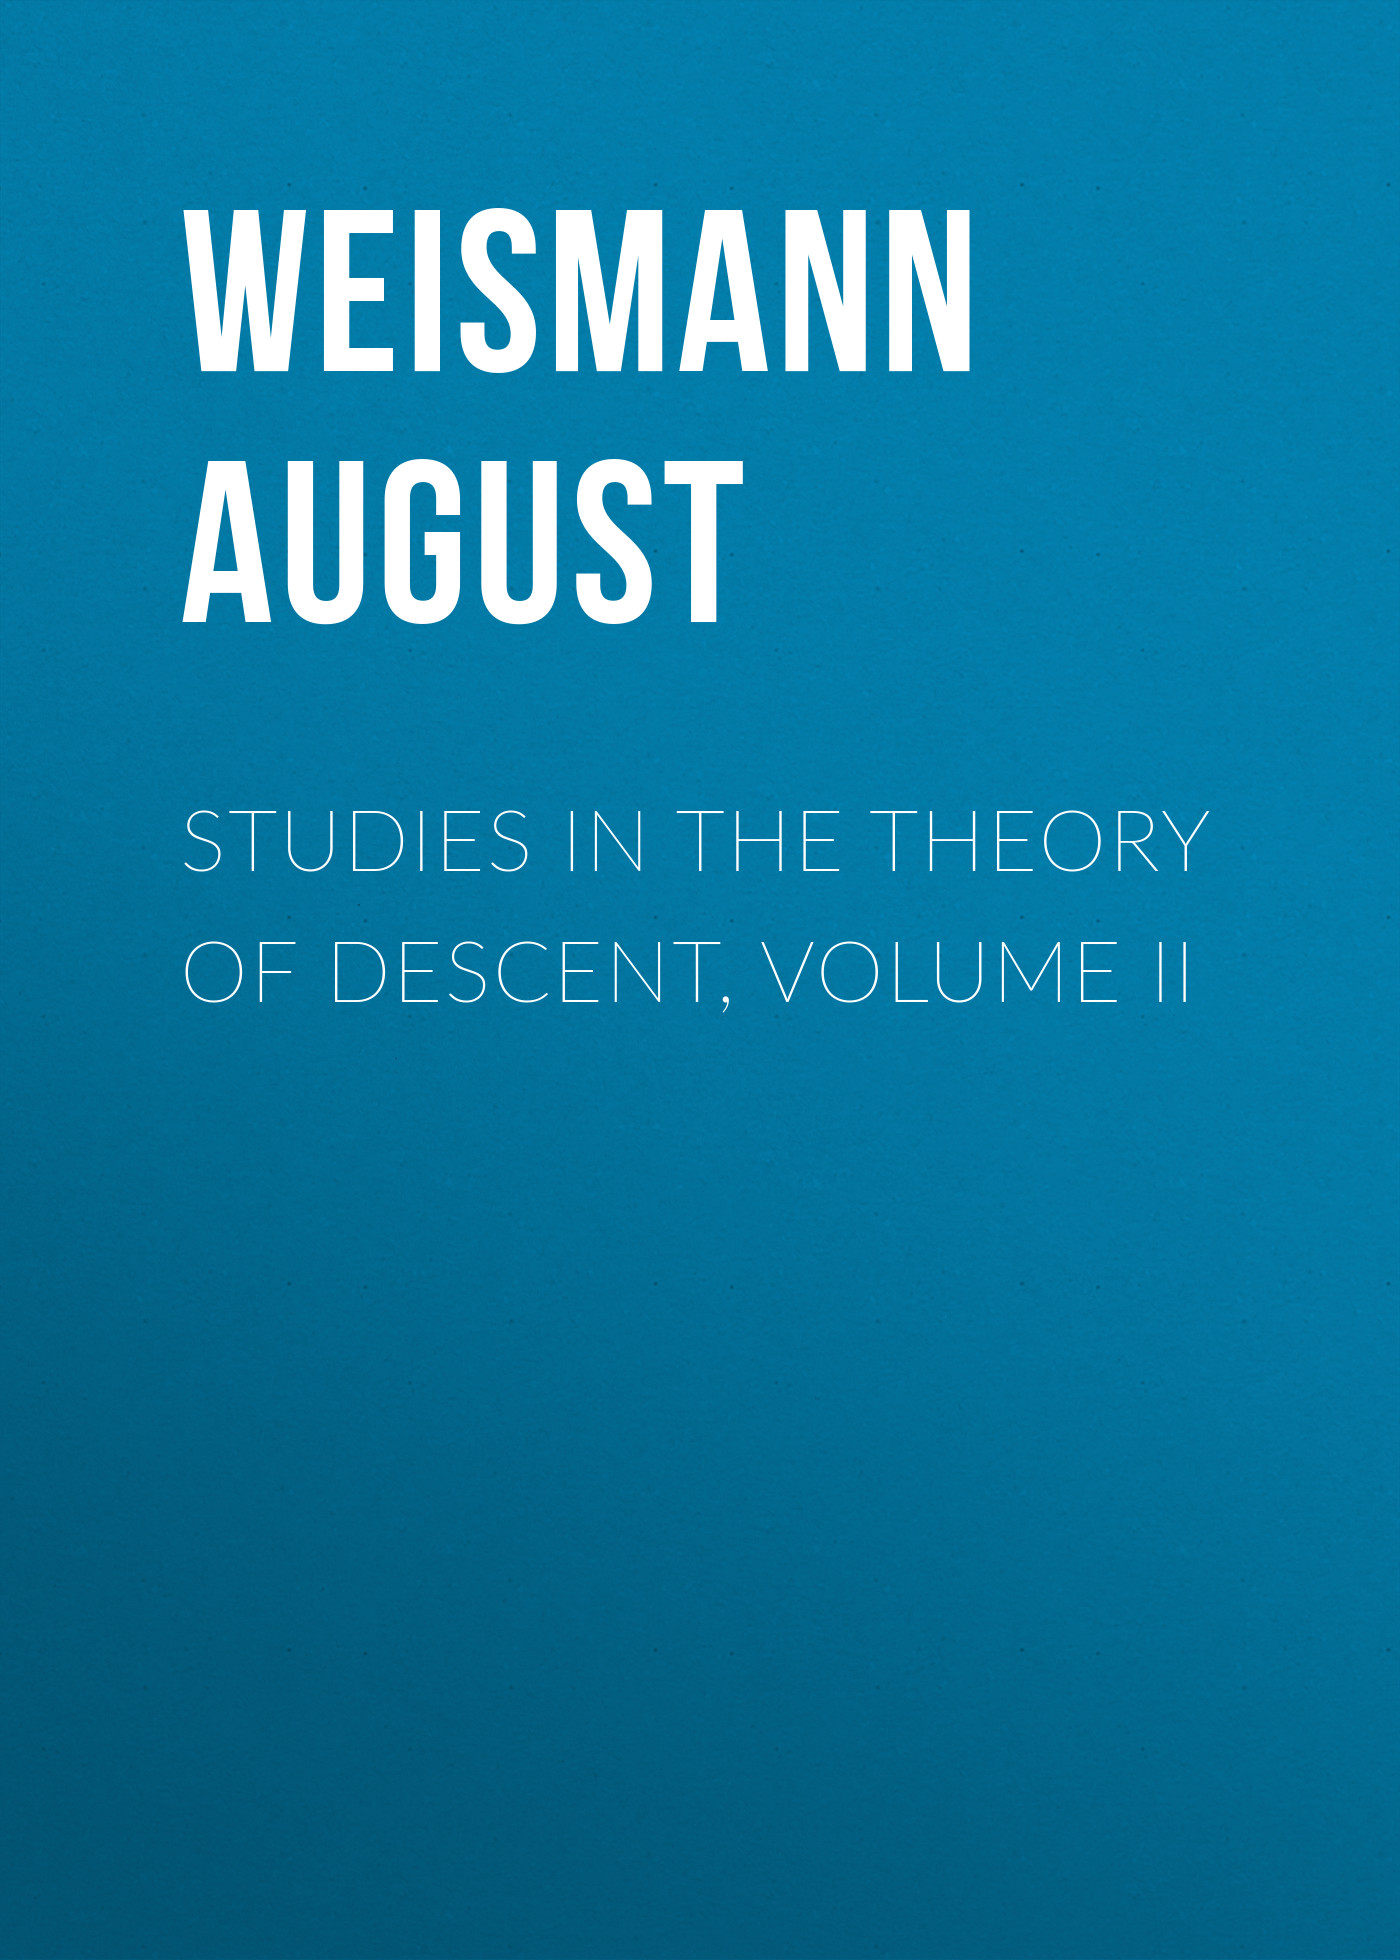 Weismann August Studies in the Theory of Descent, Volume II купить недорого в Москве